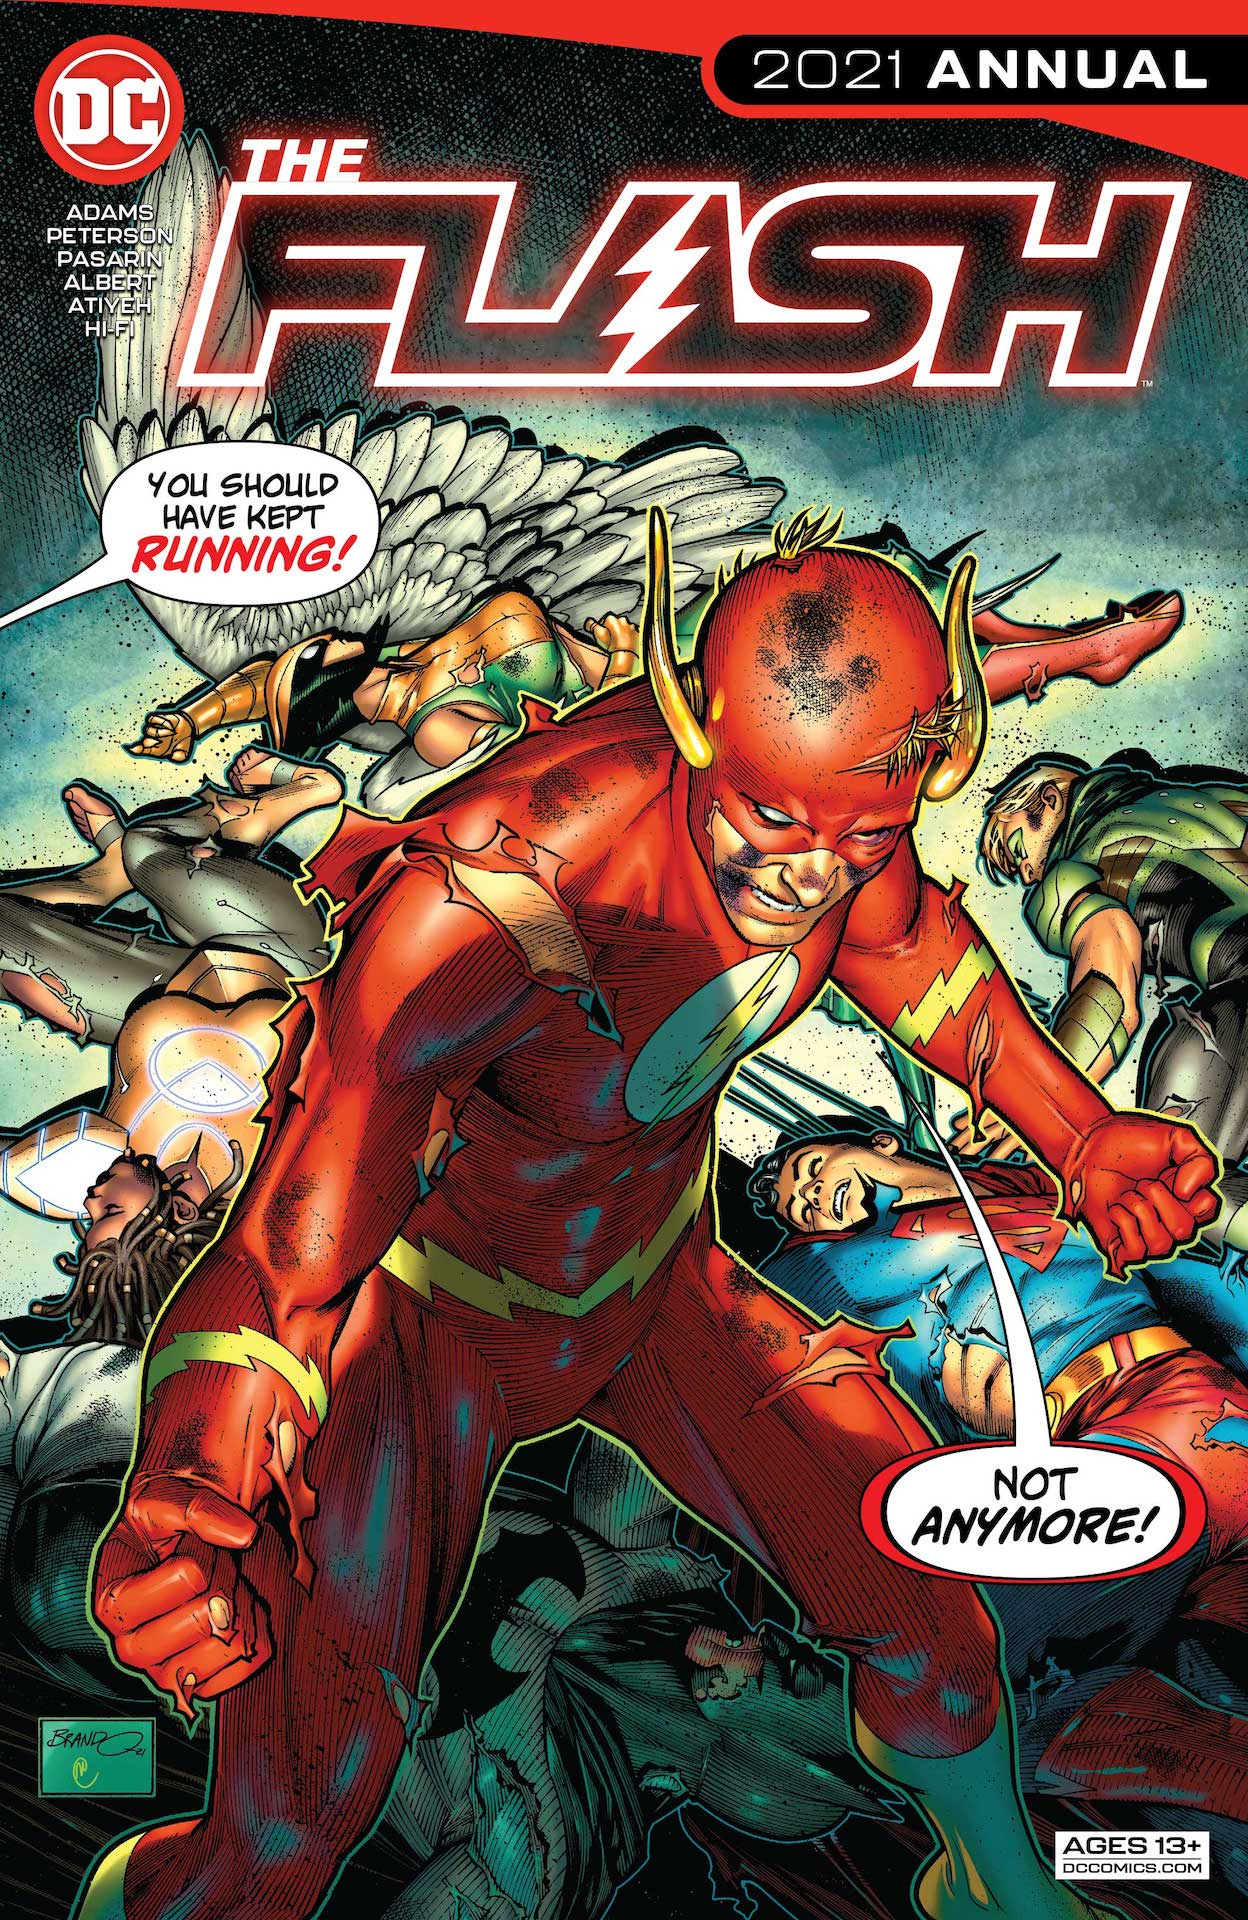 DC Preview: The Flash 2021 Annual #1